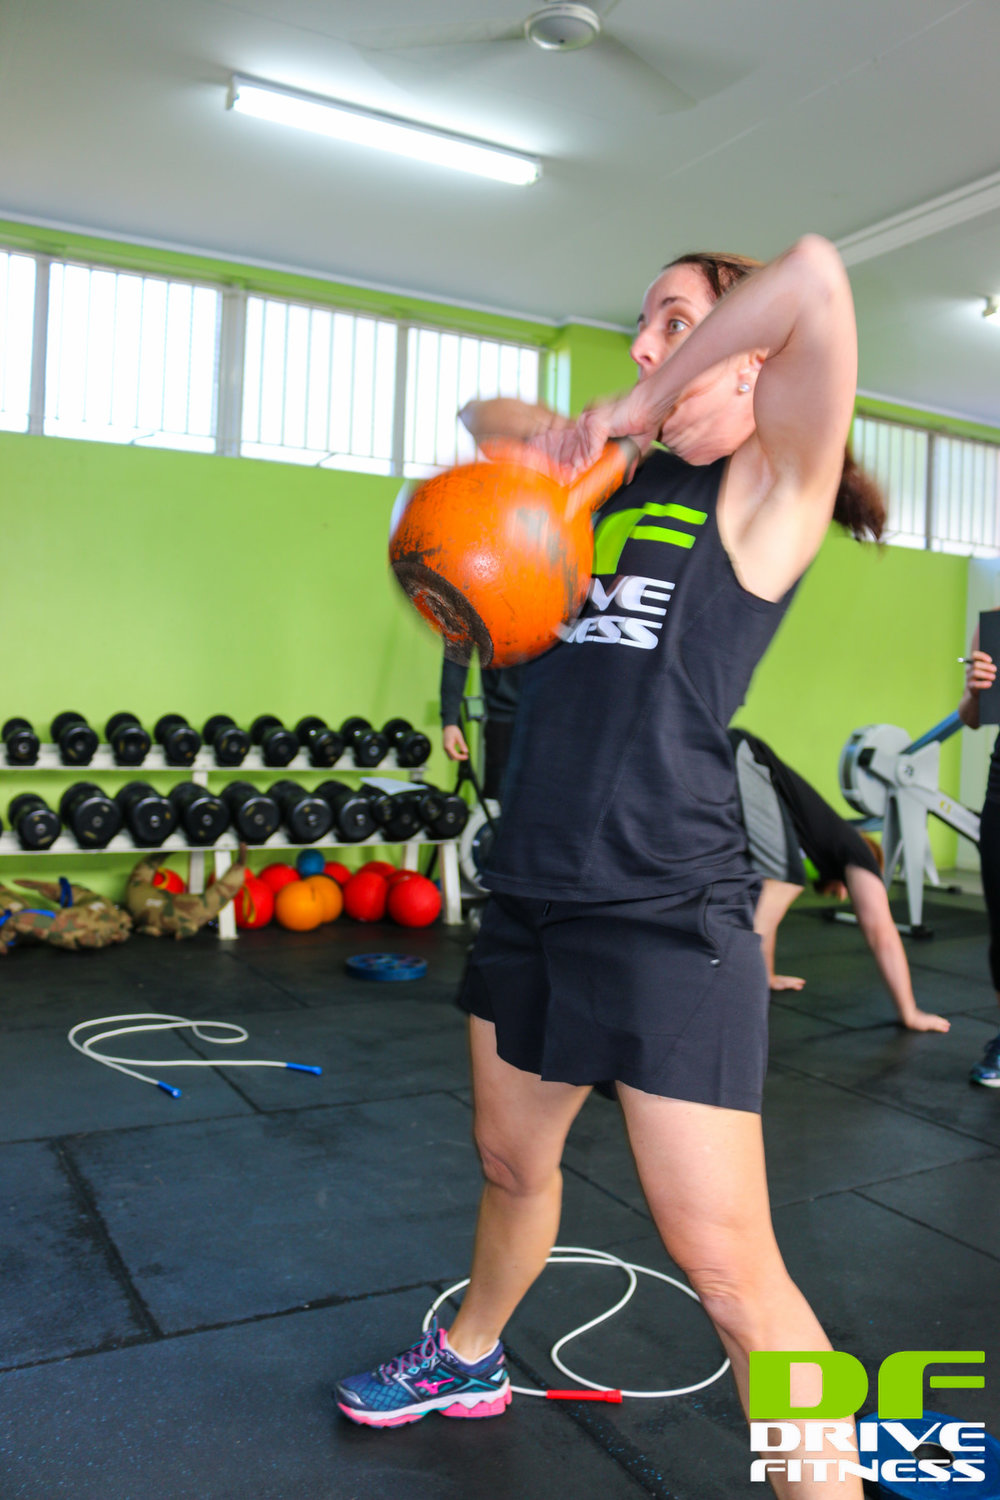 drive-fitness-personal-training-brisbane-4wws-2018 (3 of 34).jpg